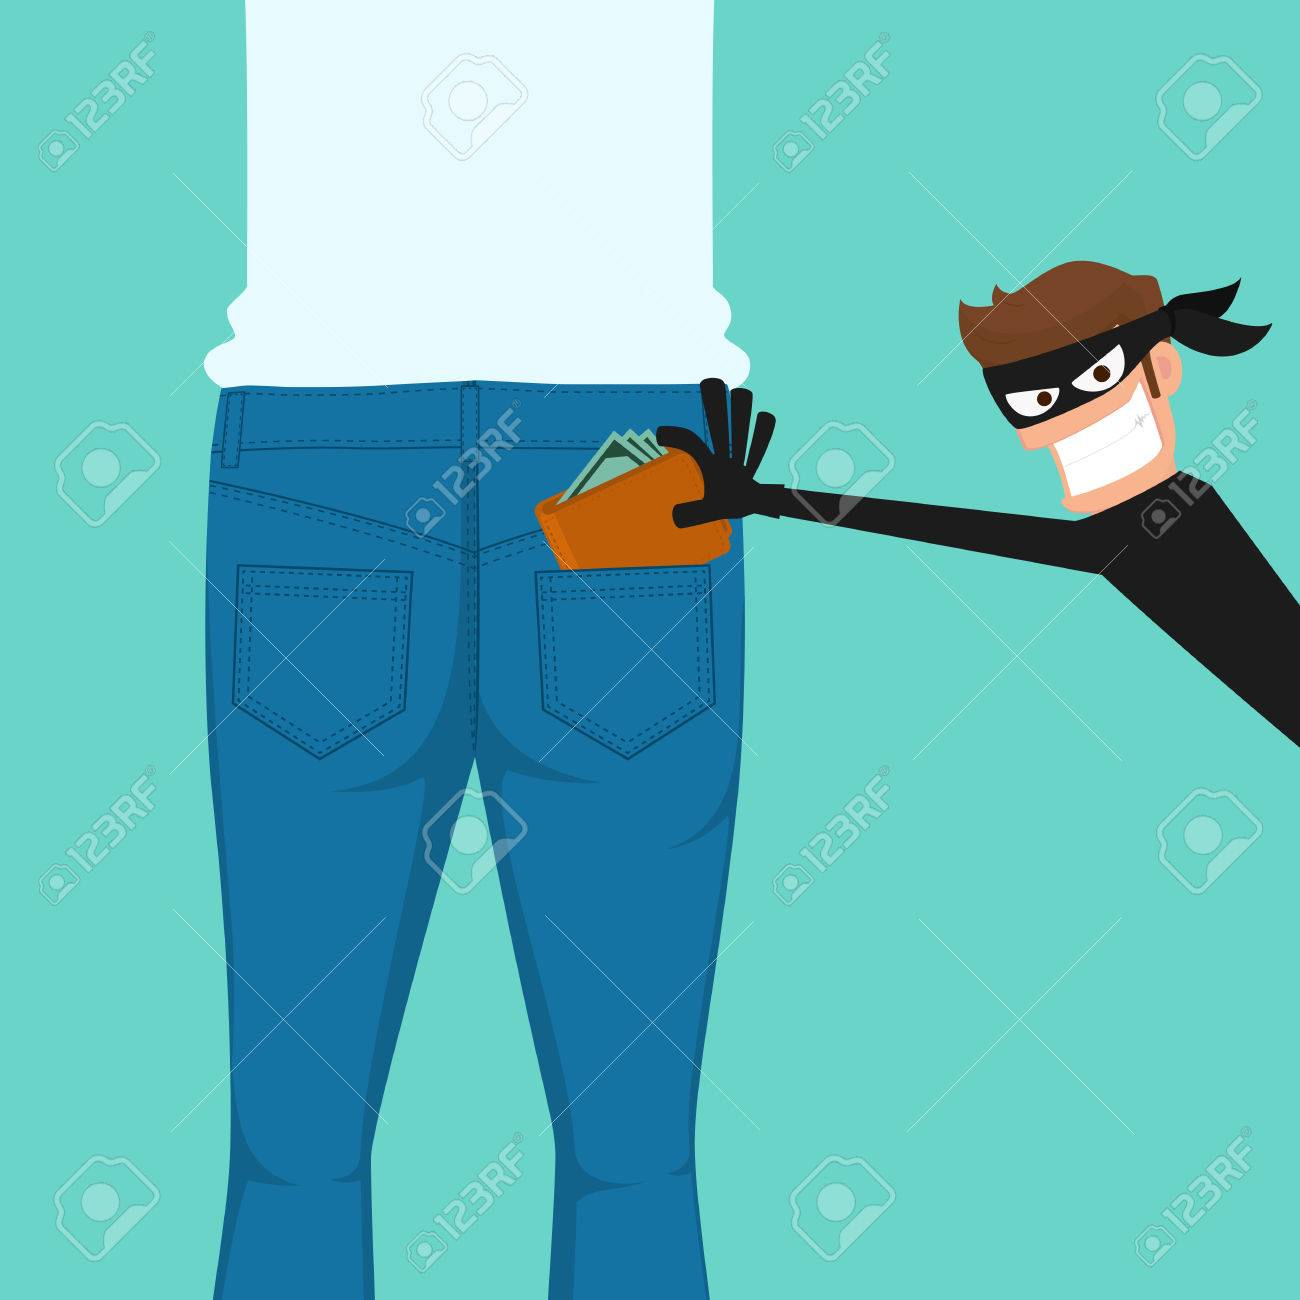 Pickpocket thief stealing a wallet from back jeans pocket, cartoon vector illustration. - 82686505